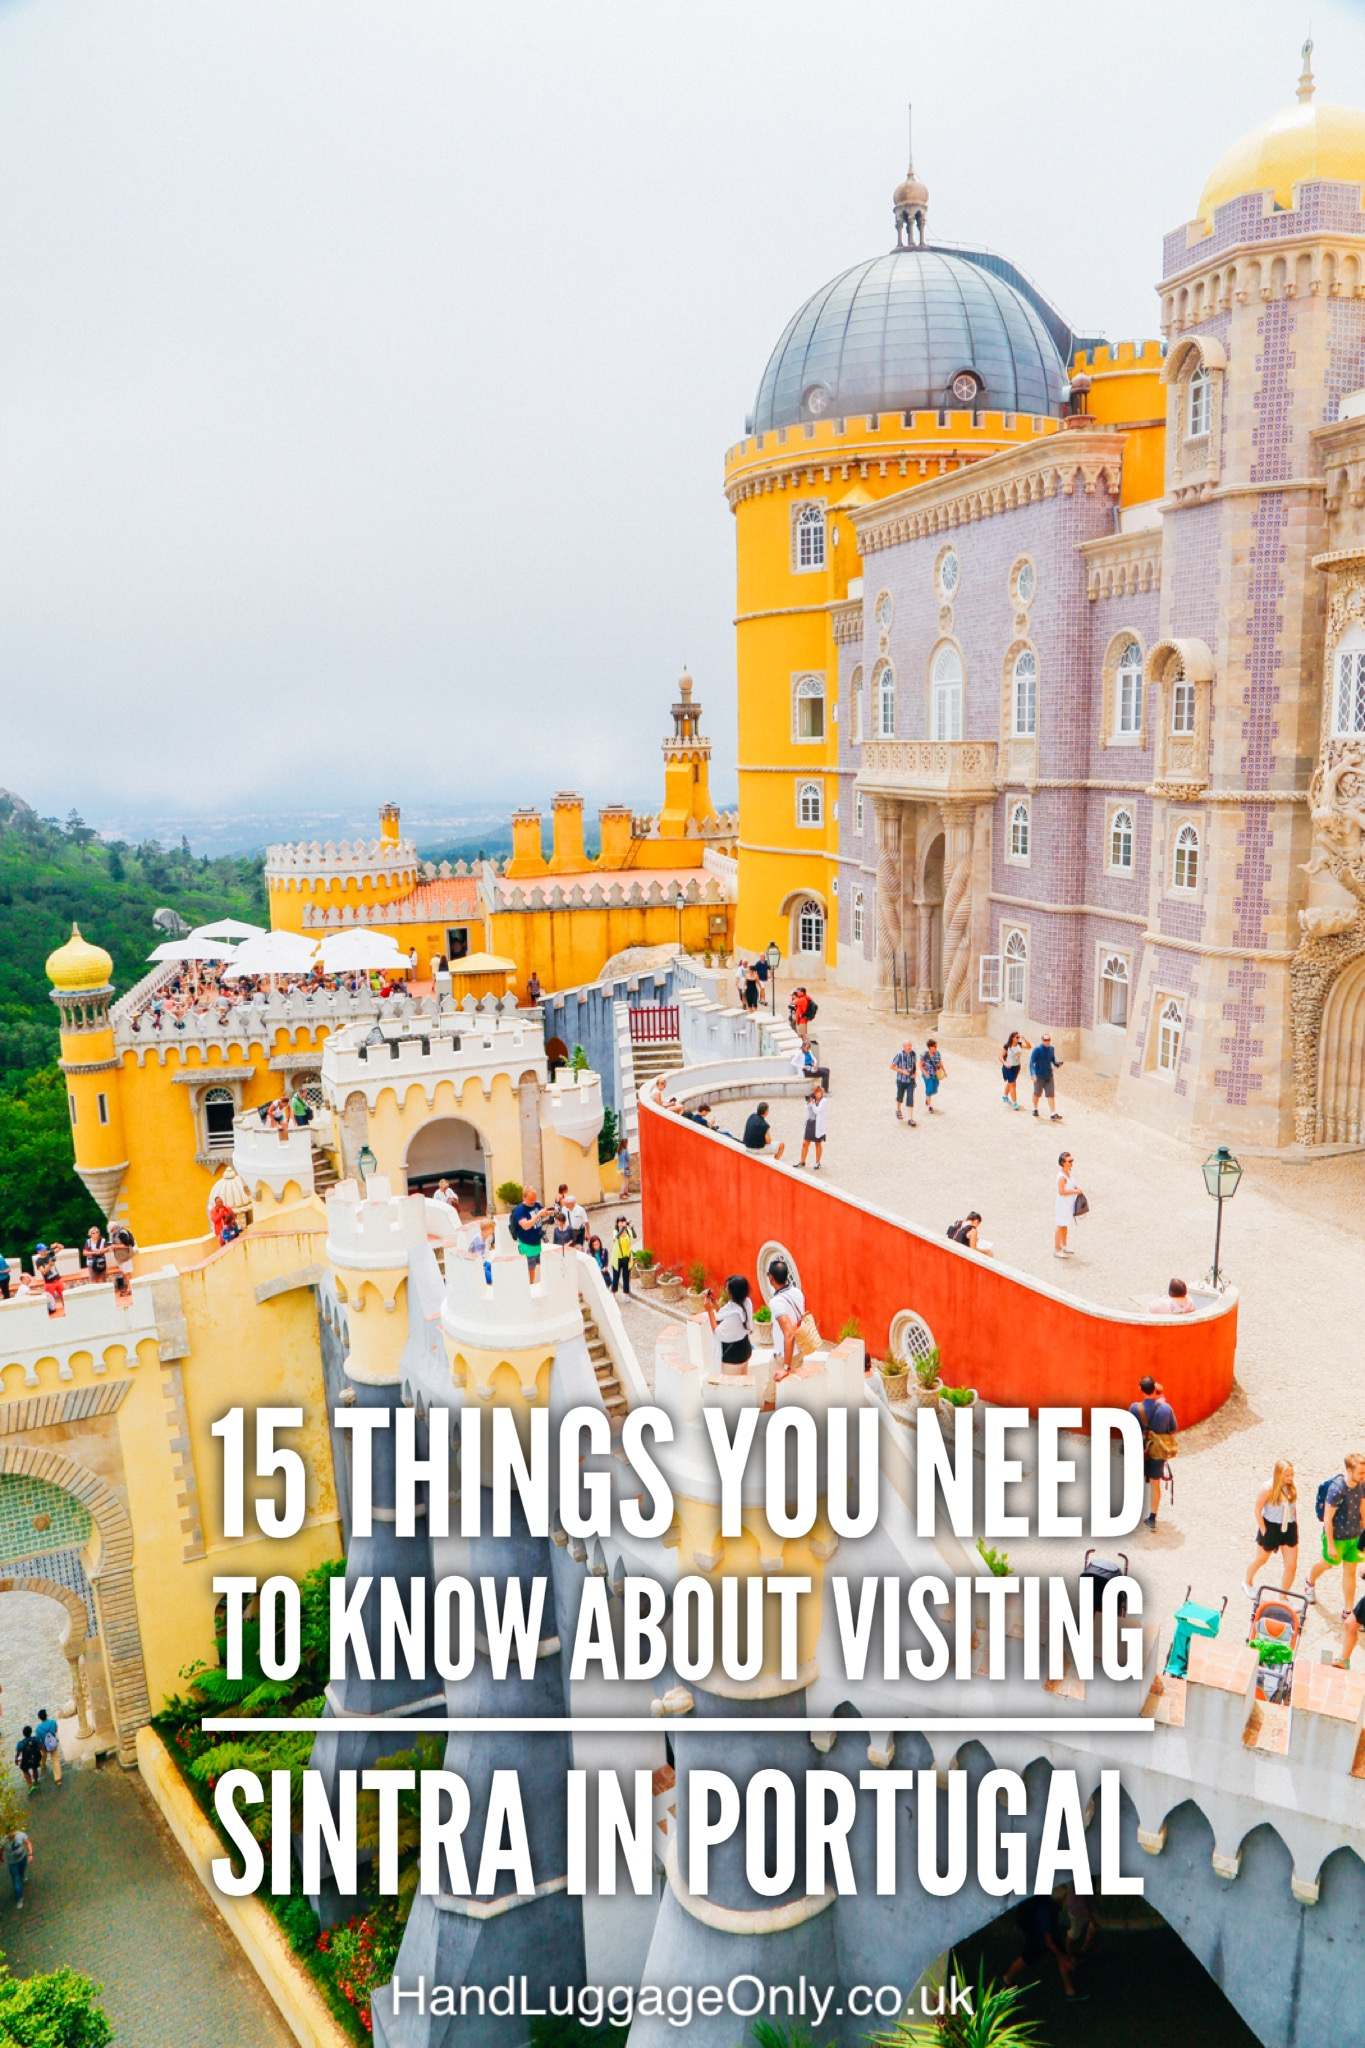 15 Things You Need To Know About Visiting Sintra In Portugal (1)